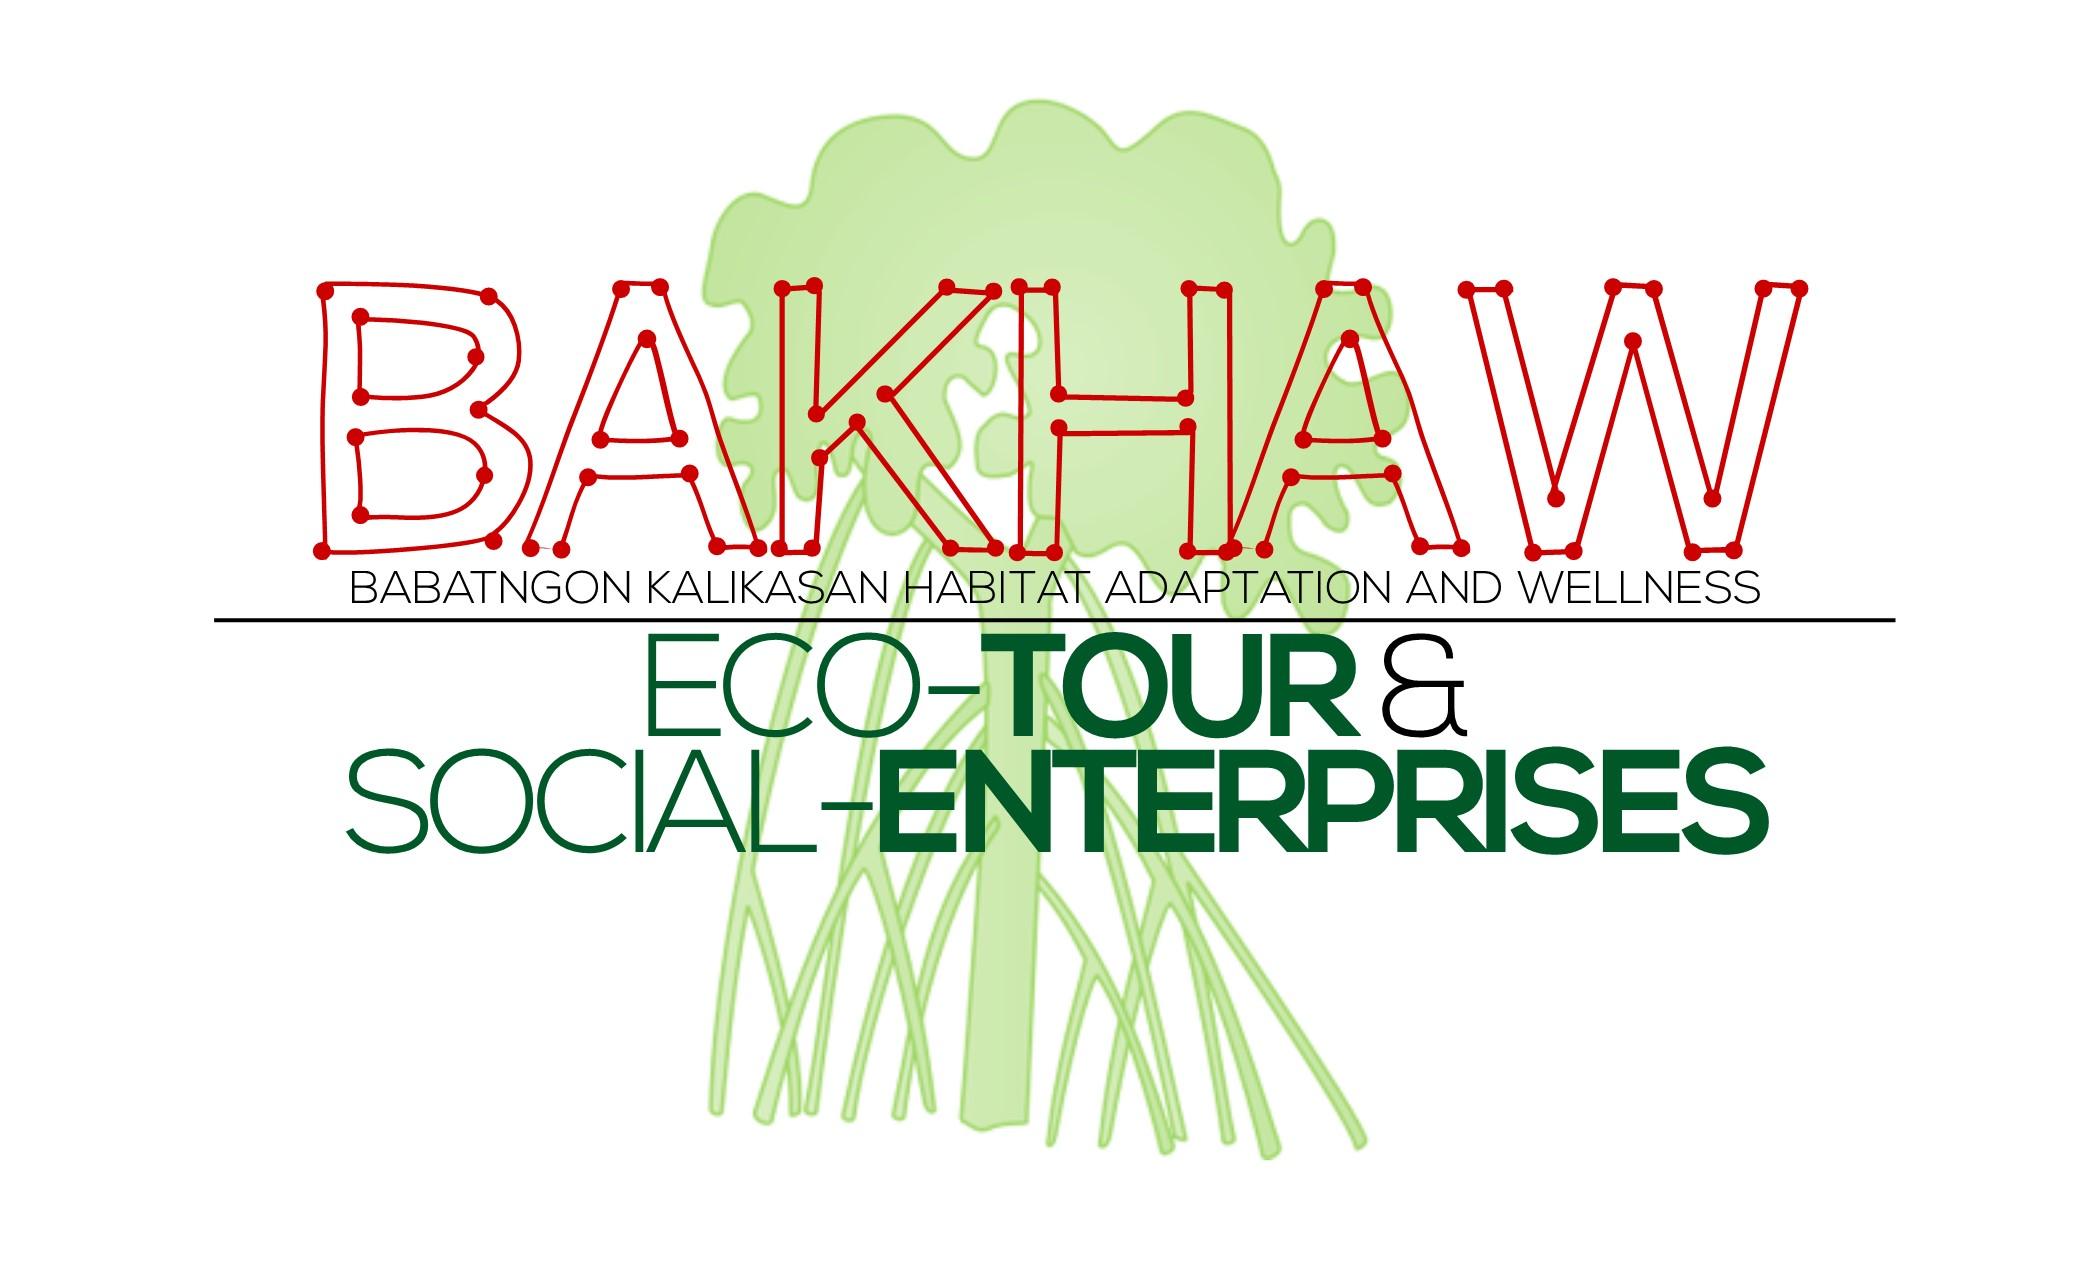 BAKHAW Eco-Tour & Social Enterprises